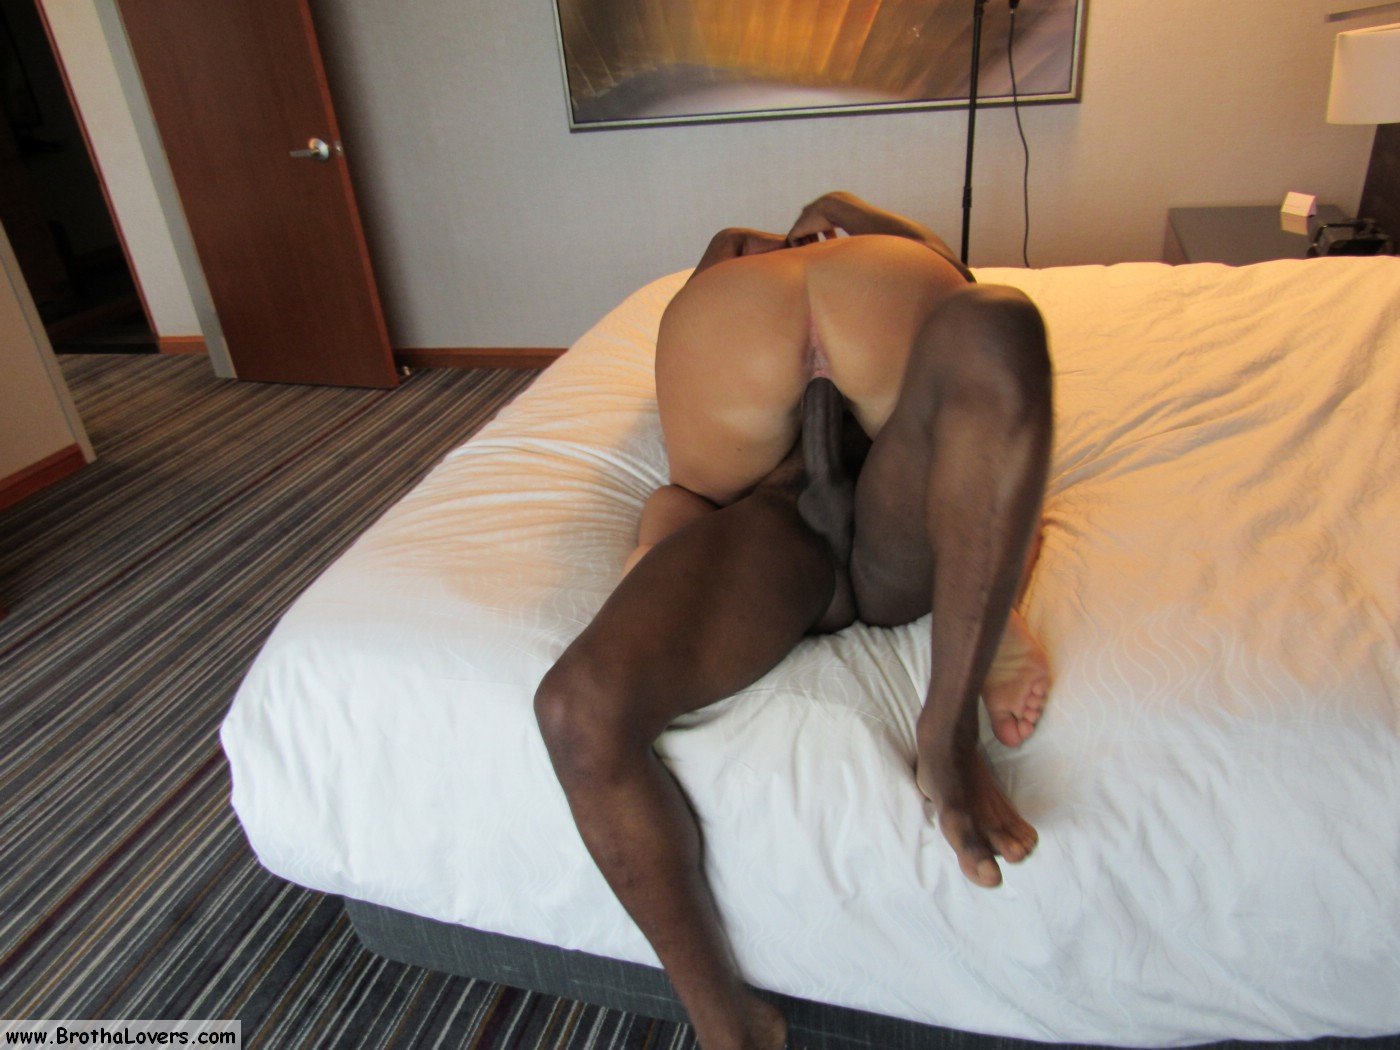 Rs very beautiful blonde falling in horny - 3 6